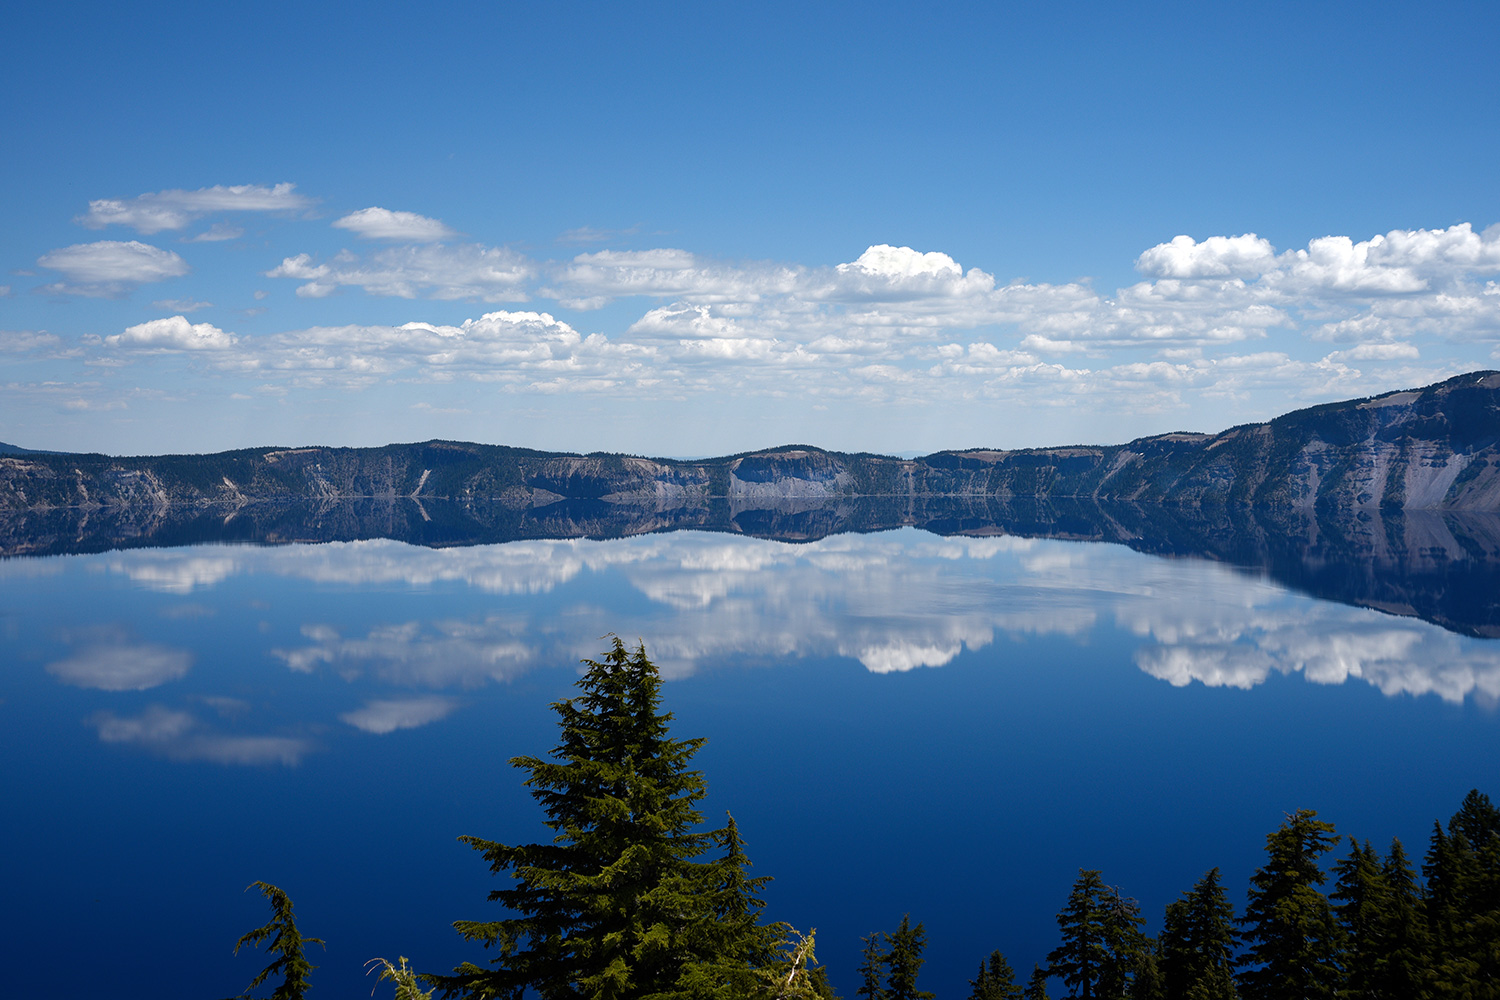 Clouds are reflected in Crater Lake in a view from a scenic overlook on the rim of the lake in Crater Lake National Park in Oregon. The lake, a water-filled caldera of an ancient volcano, was formed 7,700 years ago by the collapse of the volcano Mount Mazama.